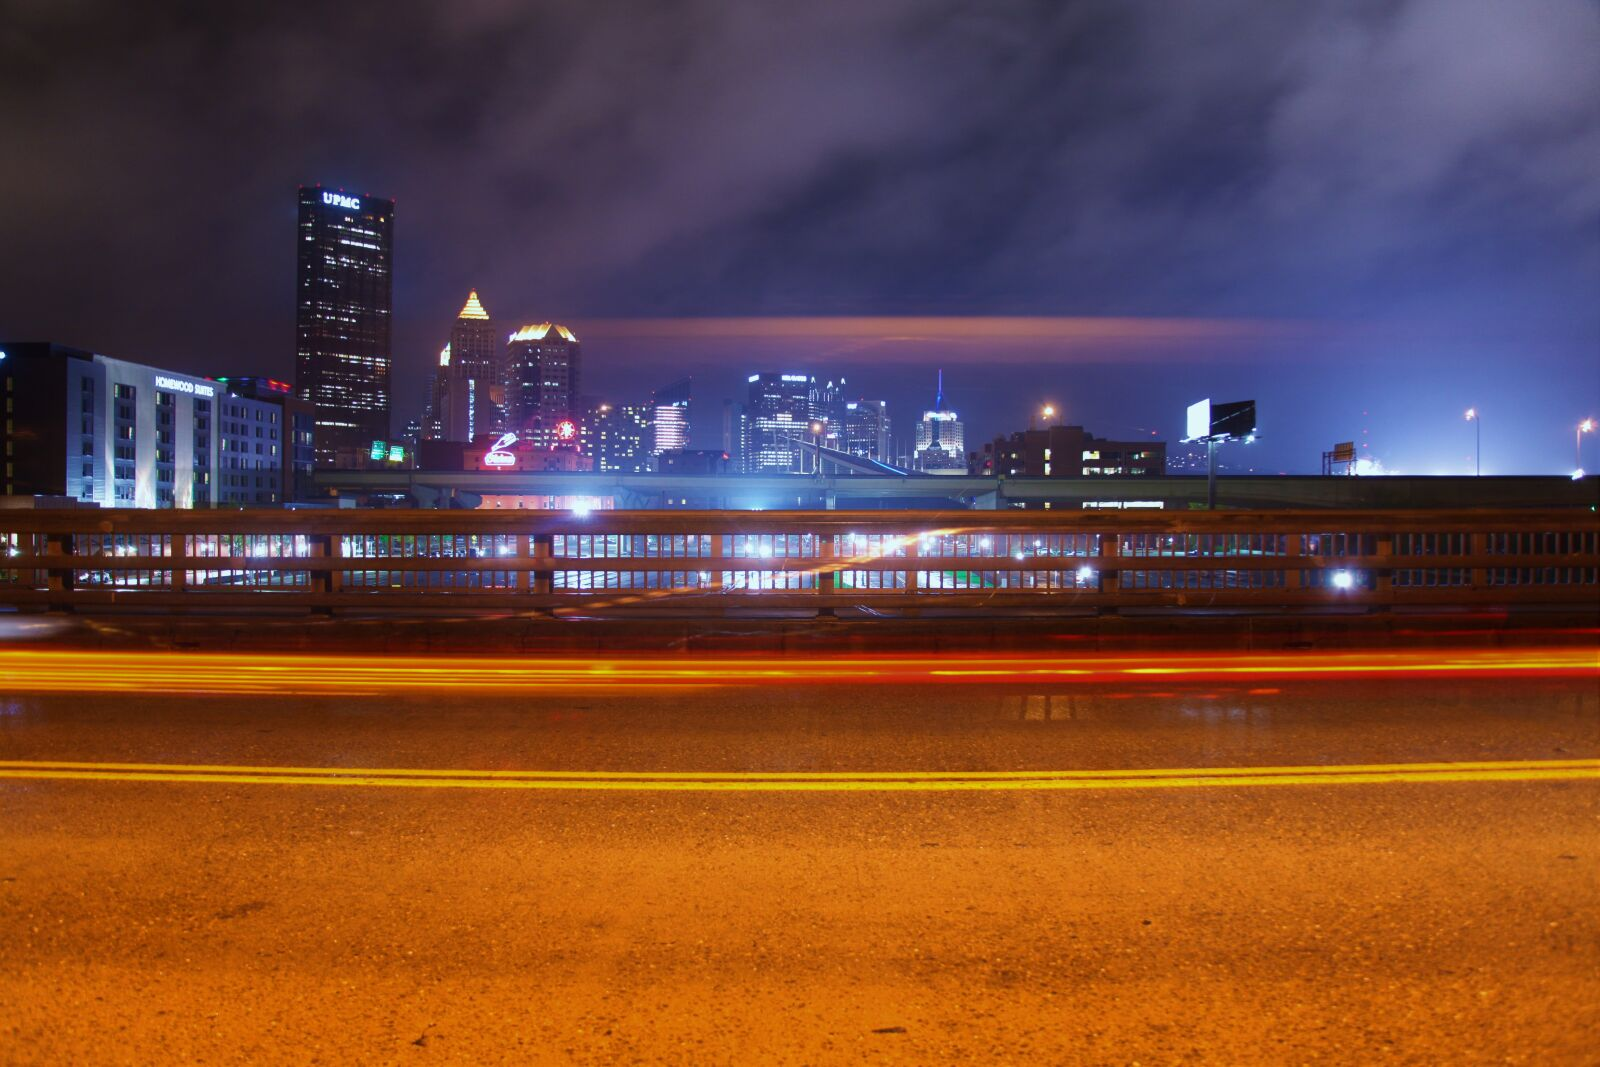 city, cityscape, night, nightlife, Canon EOS 5D MARK II, Canon EF 28-135mm f/3.5-5.6 IS